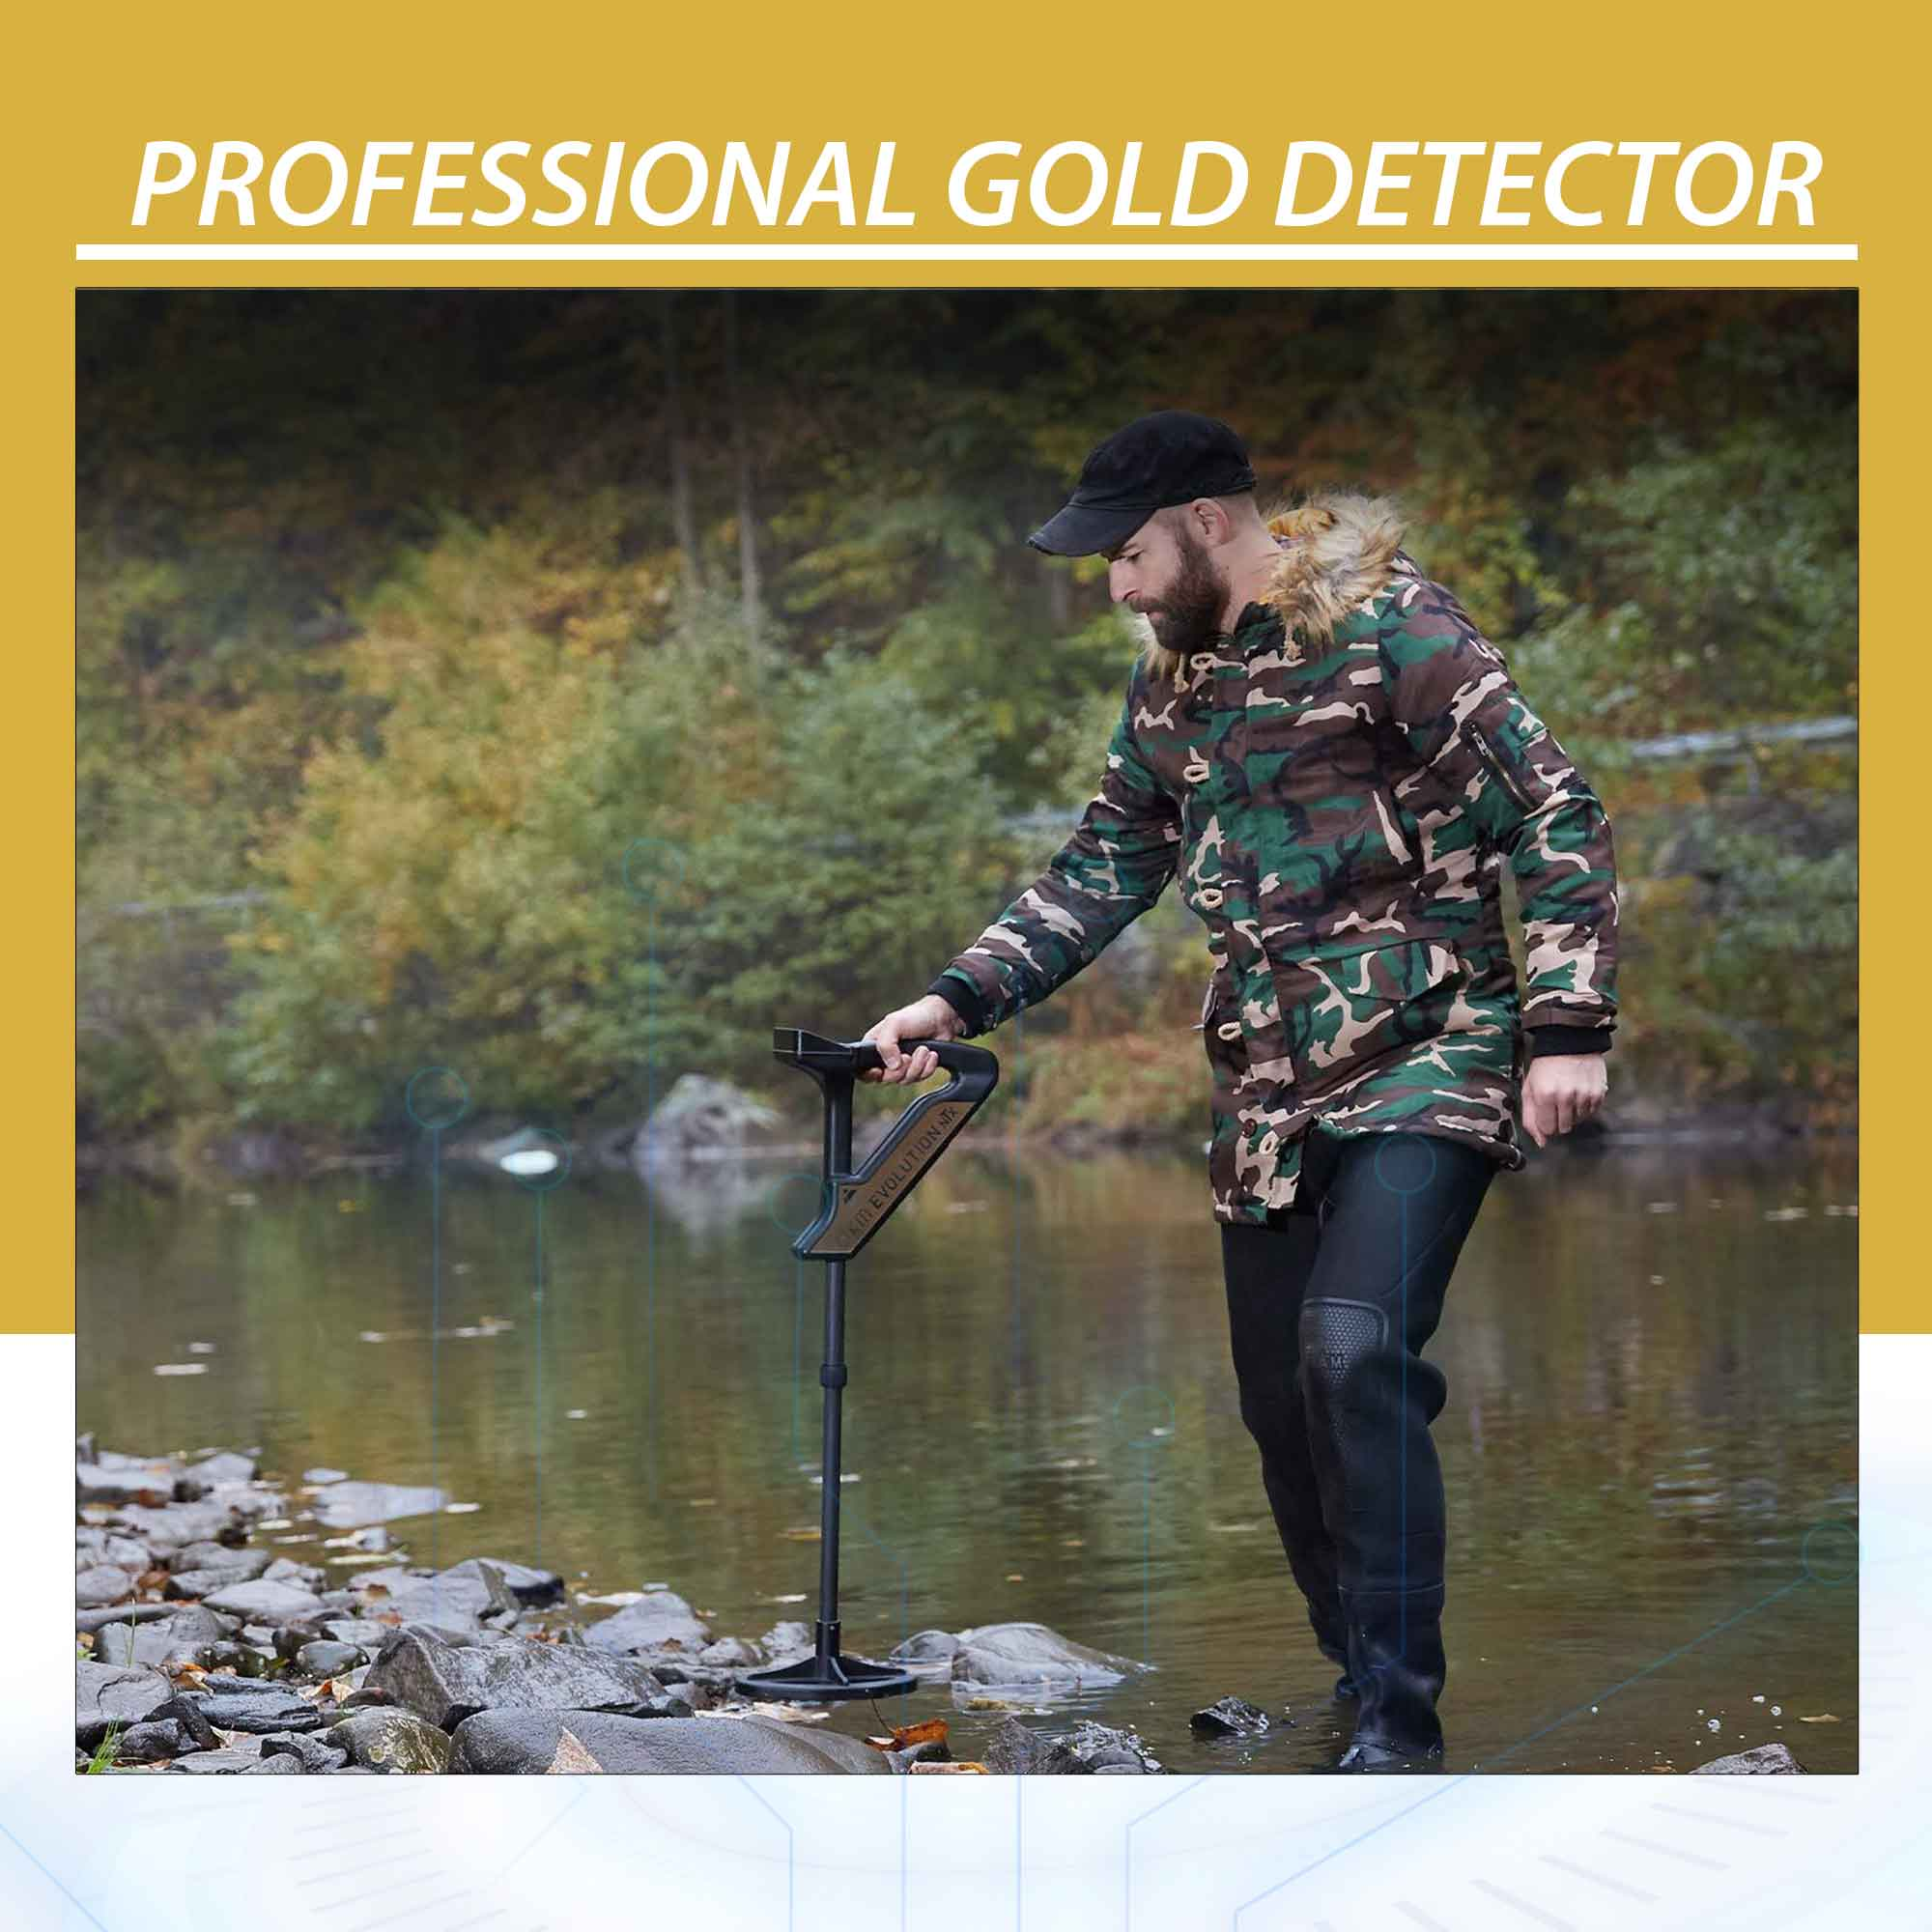 Professional Gold Detector